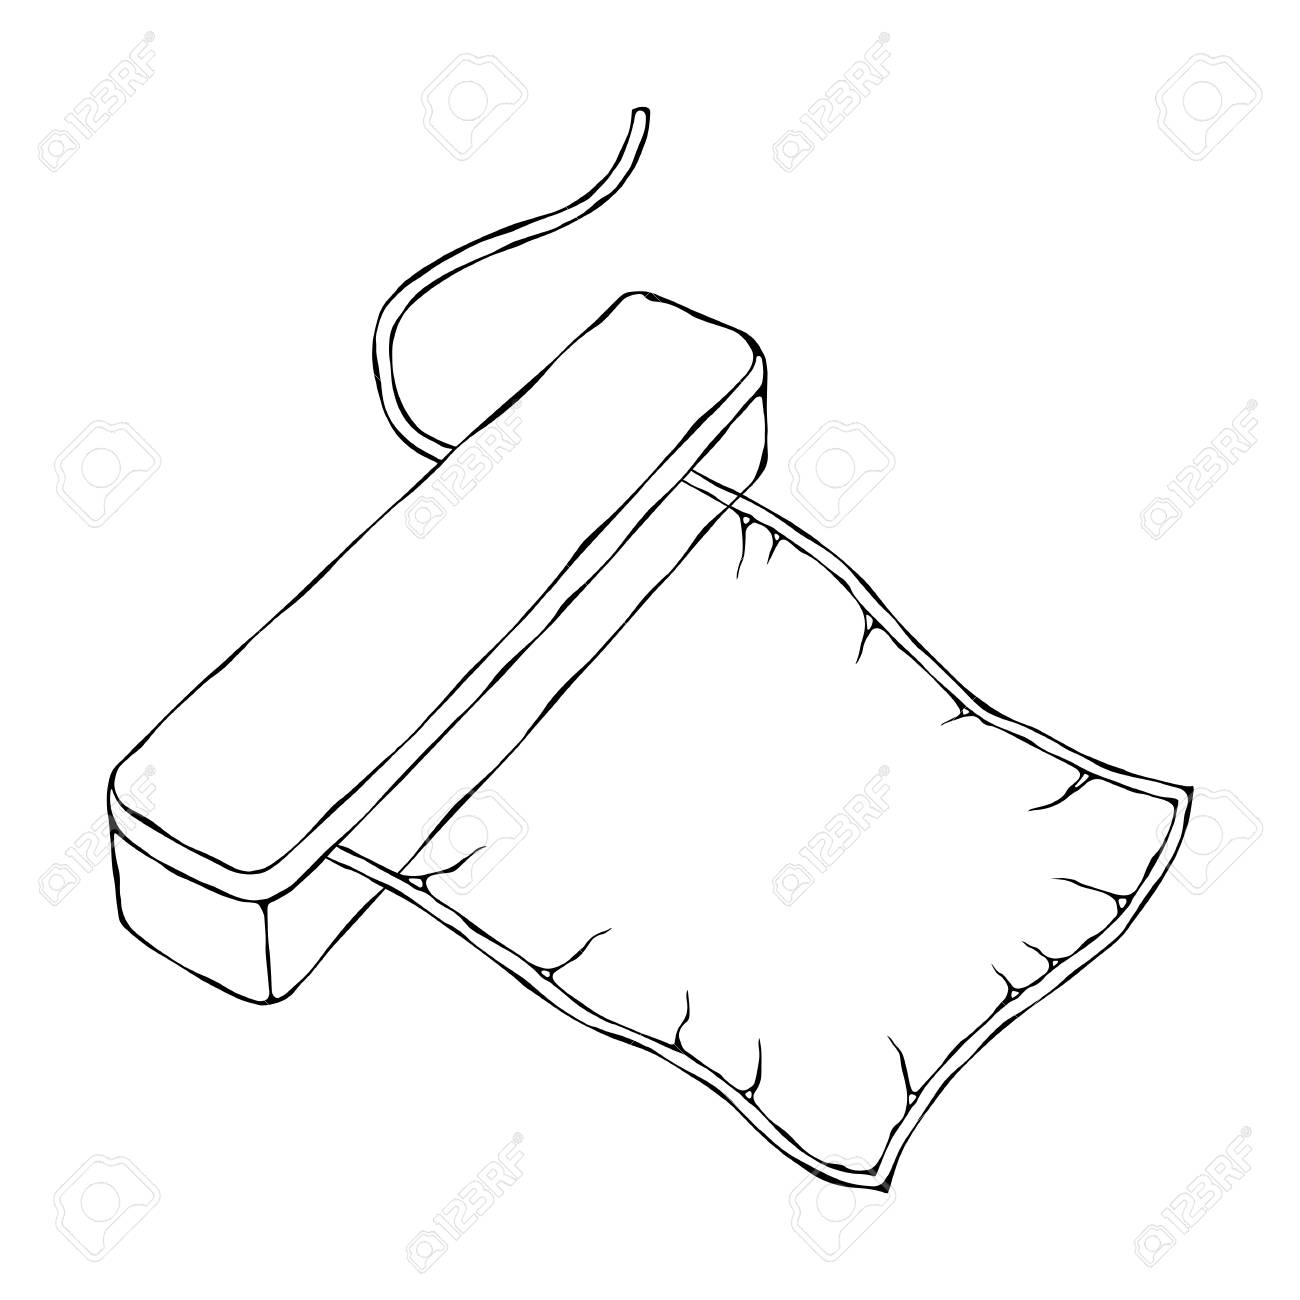 Vacuumizer Food Sealer with Vacuum Bag. What is Sous-Vide. Slow Cooking Technology. Perfect Food. Chief Cuisine Collection. EPS10 Vector. Hand Drawn Doodle Style Realistic Illustration - 126910596